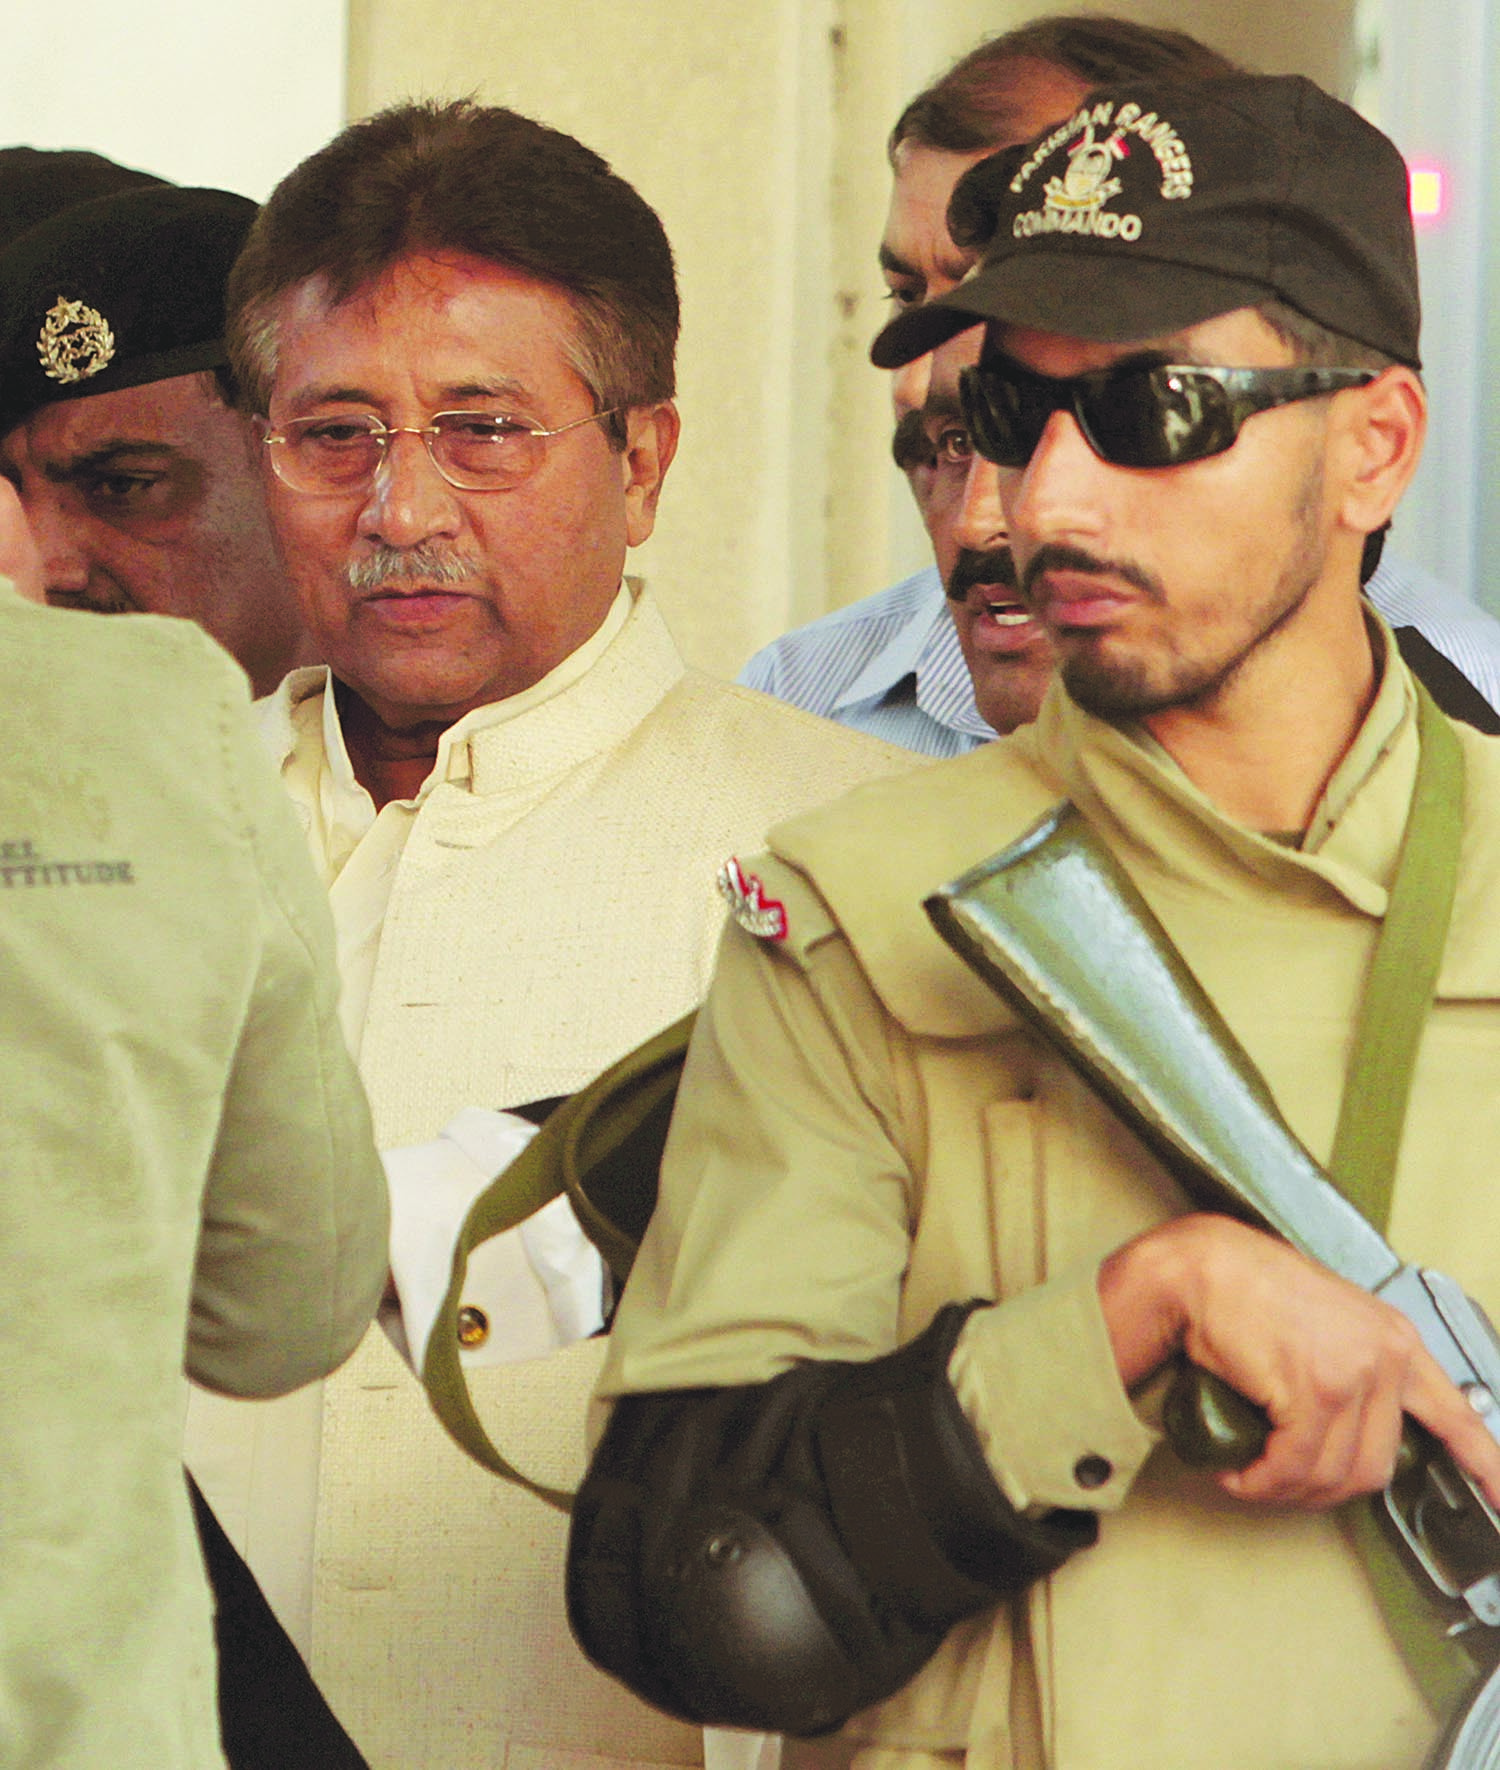 ONE of the parting acts of the PPP government was the initiation of legal proceedings against Pervez Musharraf for high treason. The former army chief subsequently had to appear in court, as seen here, for a few times before he was allowed to proceed abroad apparently for medical treatment.